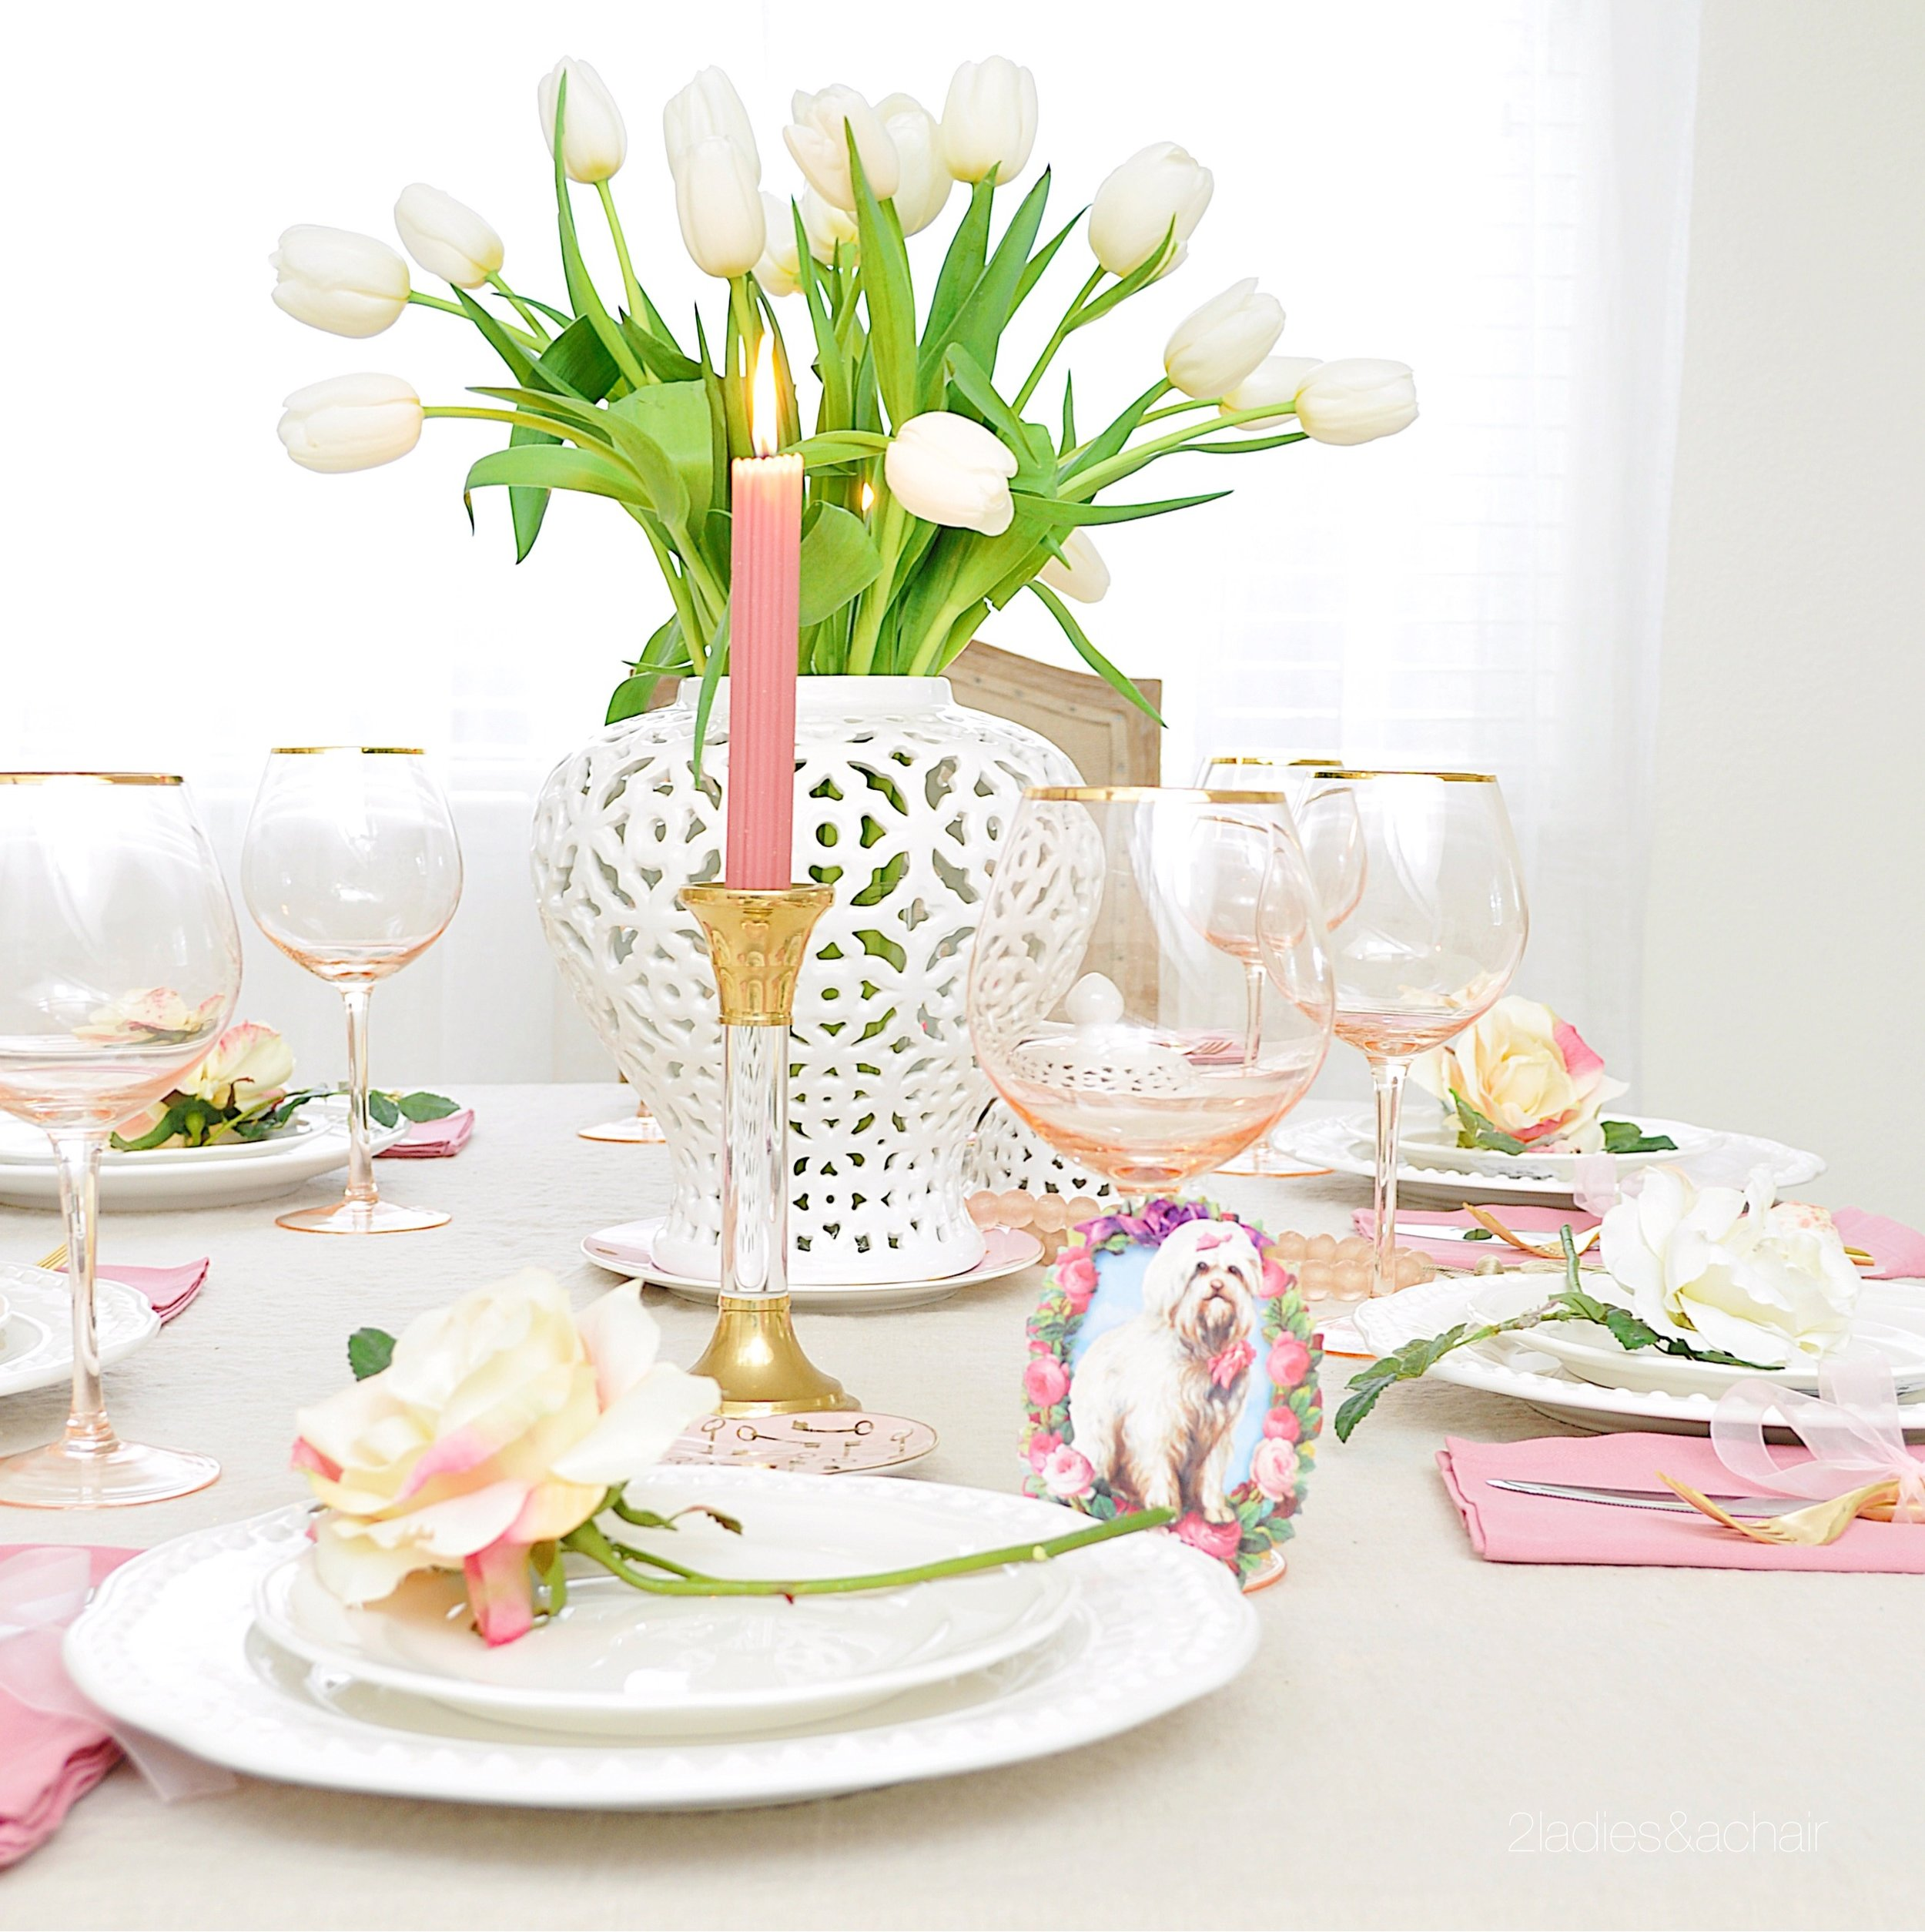 valentine's day table decor IMG_8951.JPG